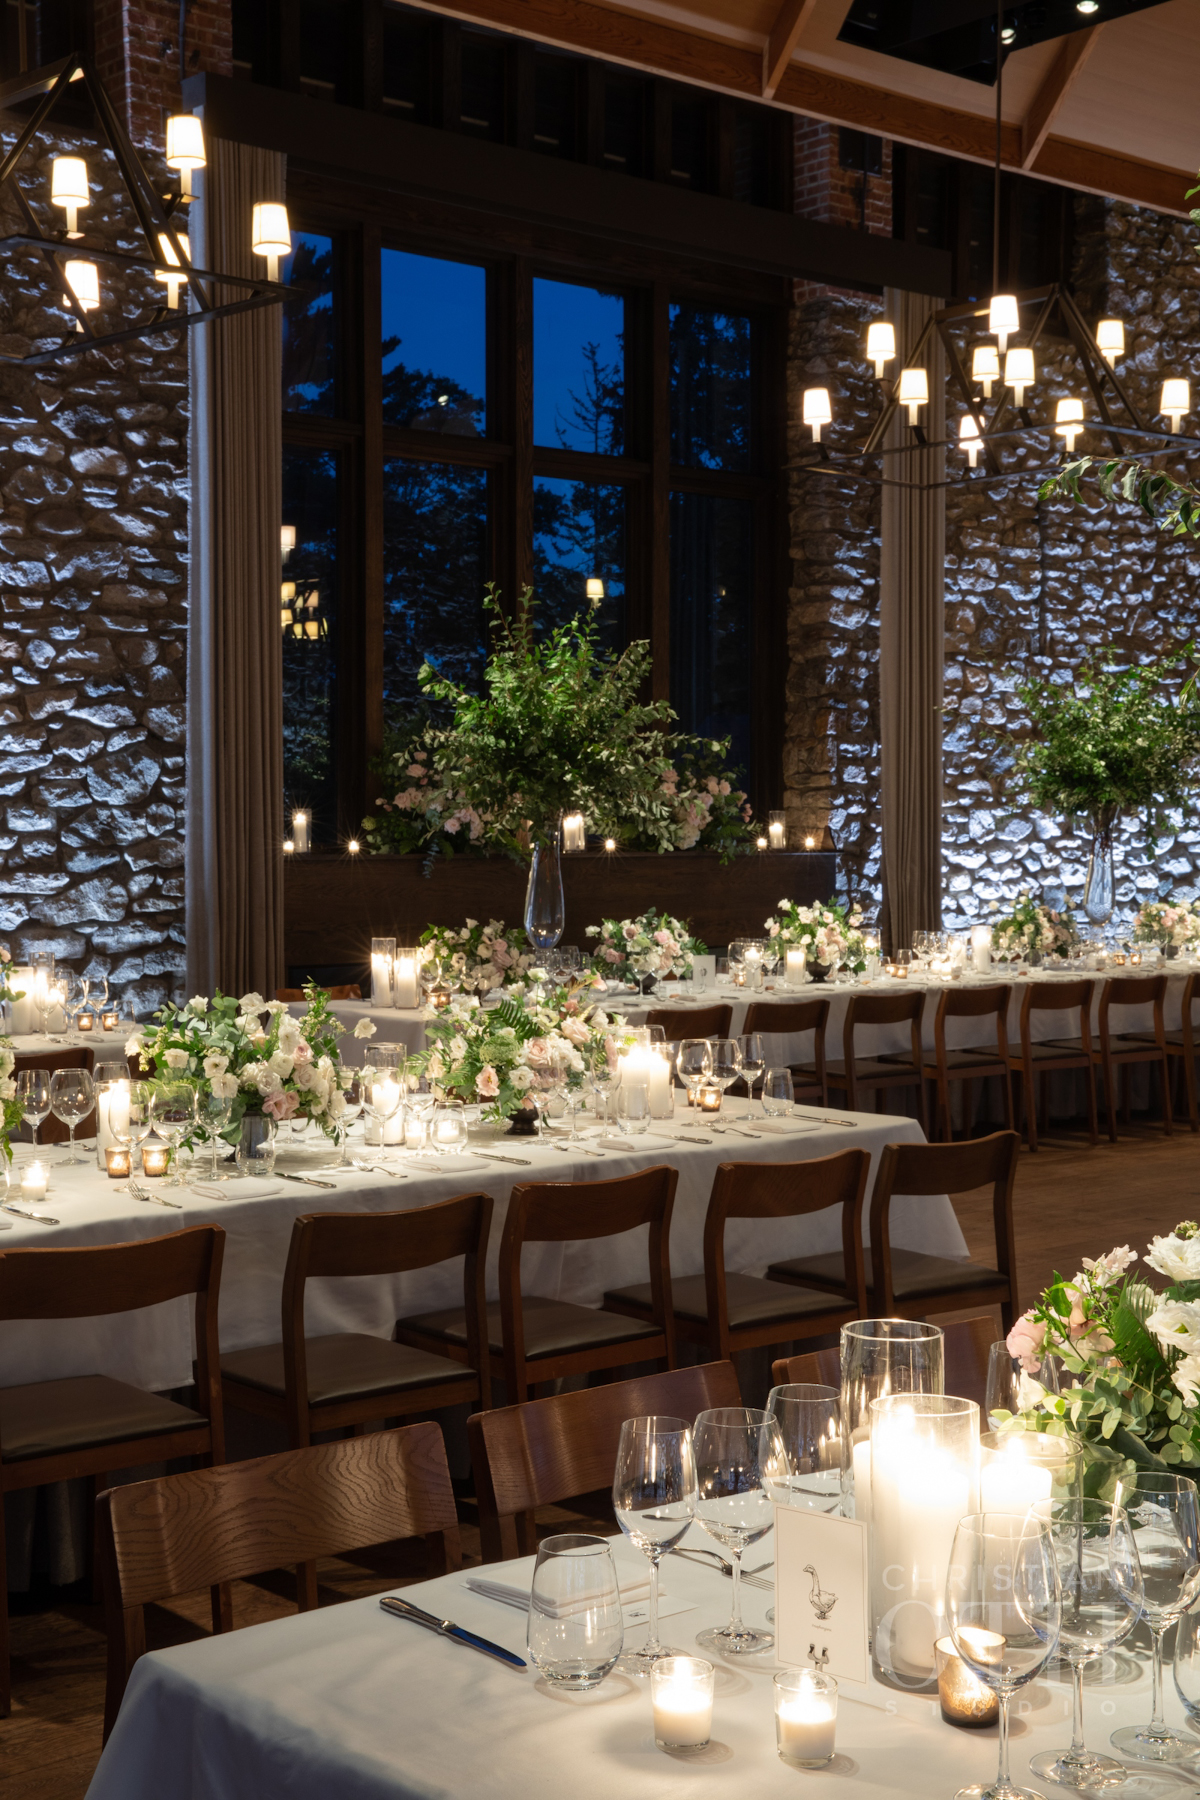 Branch arrangements and lush flowers at Blue Hill at Stone Barns wedding